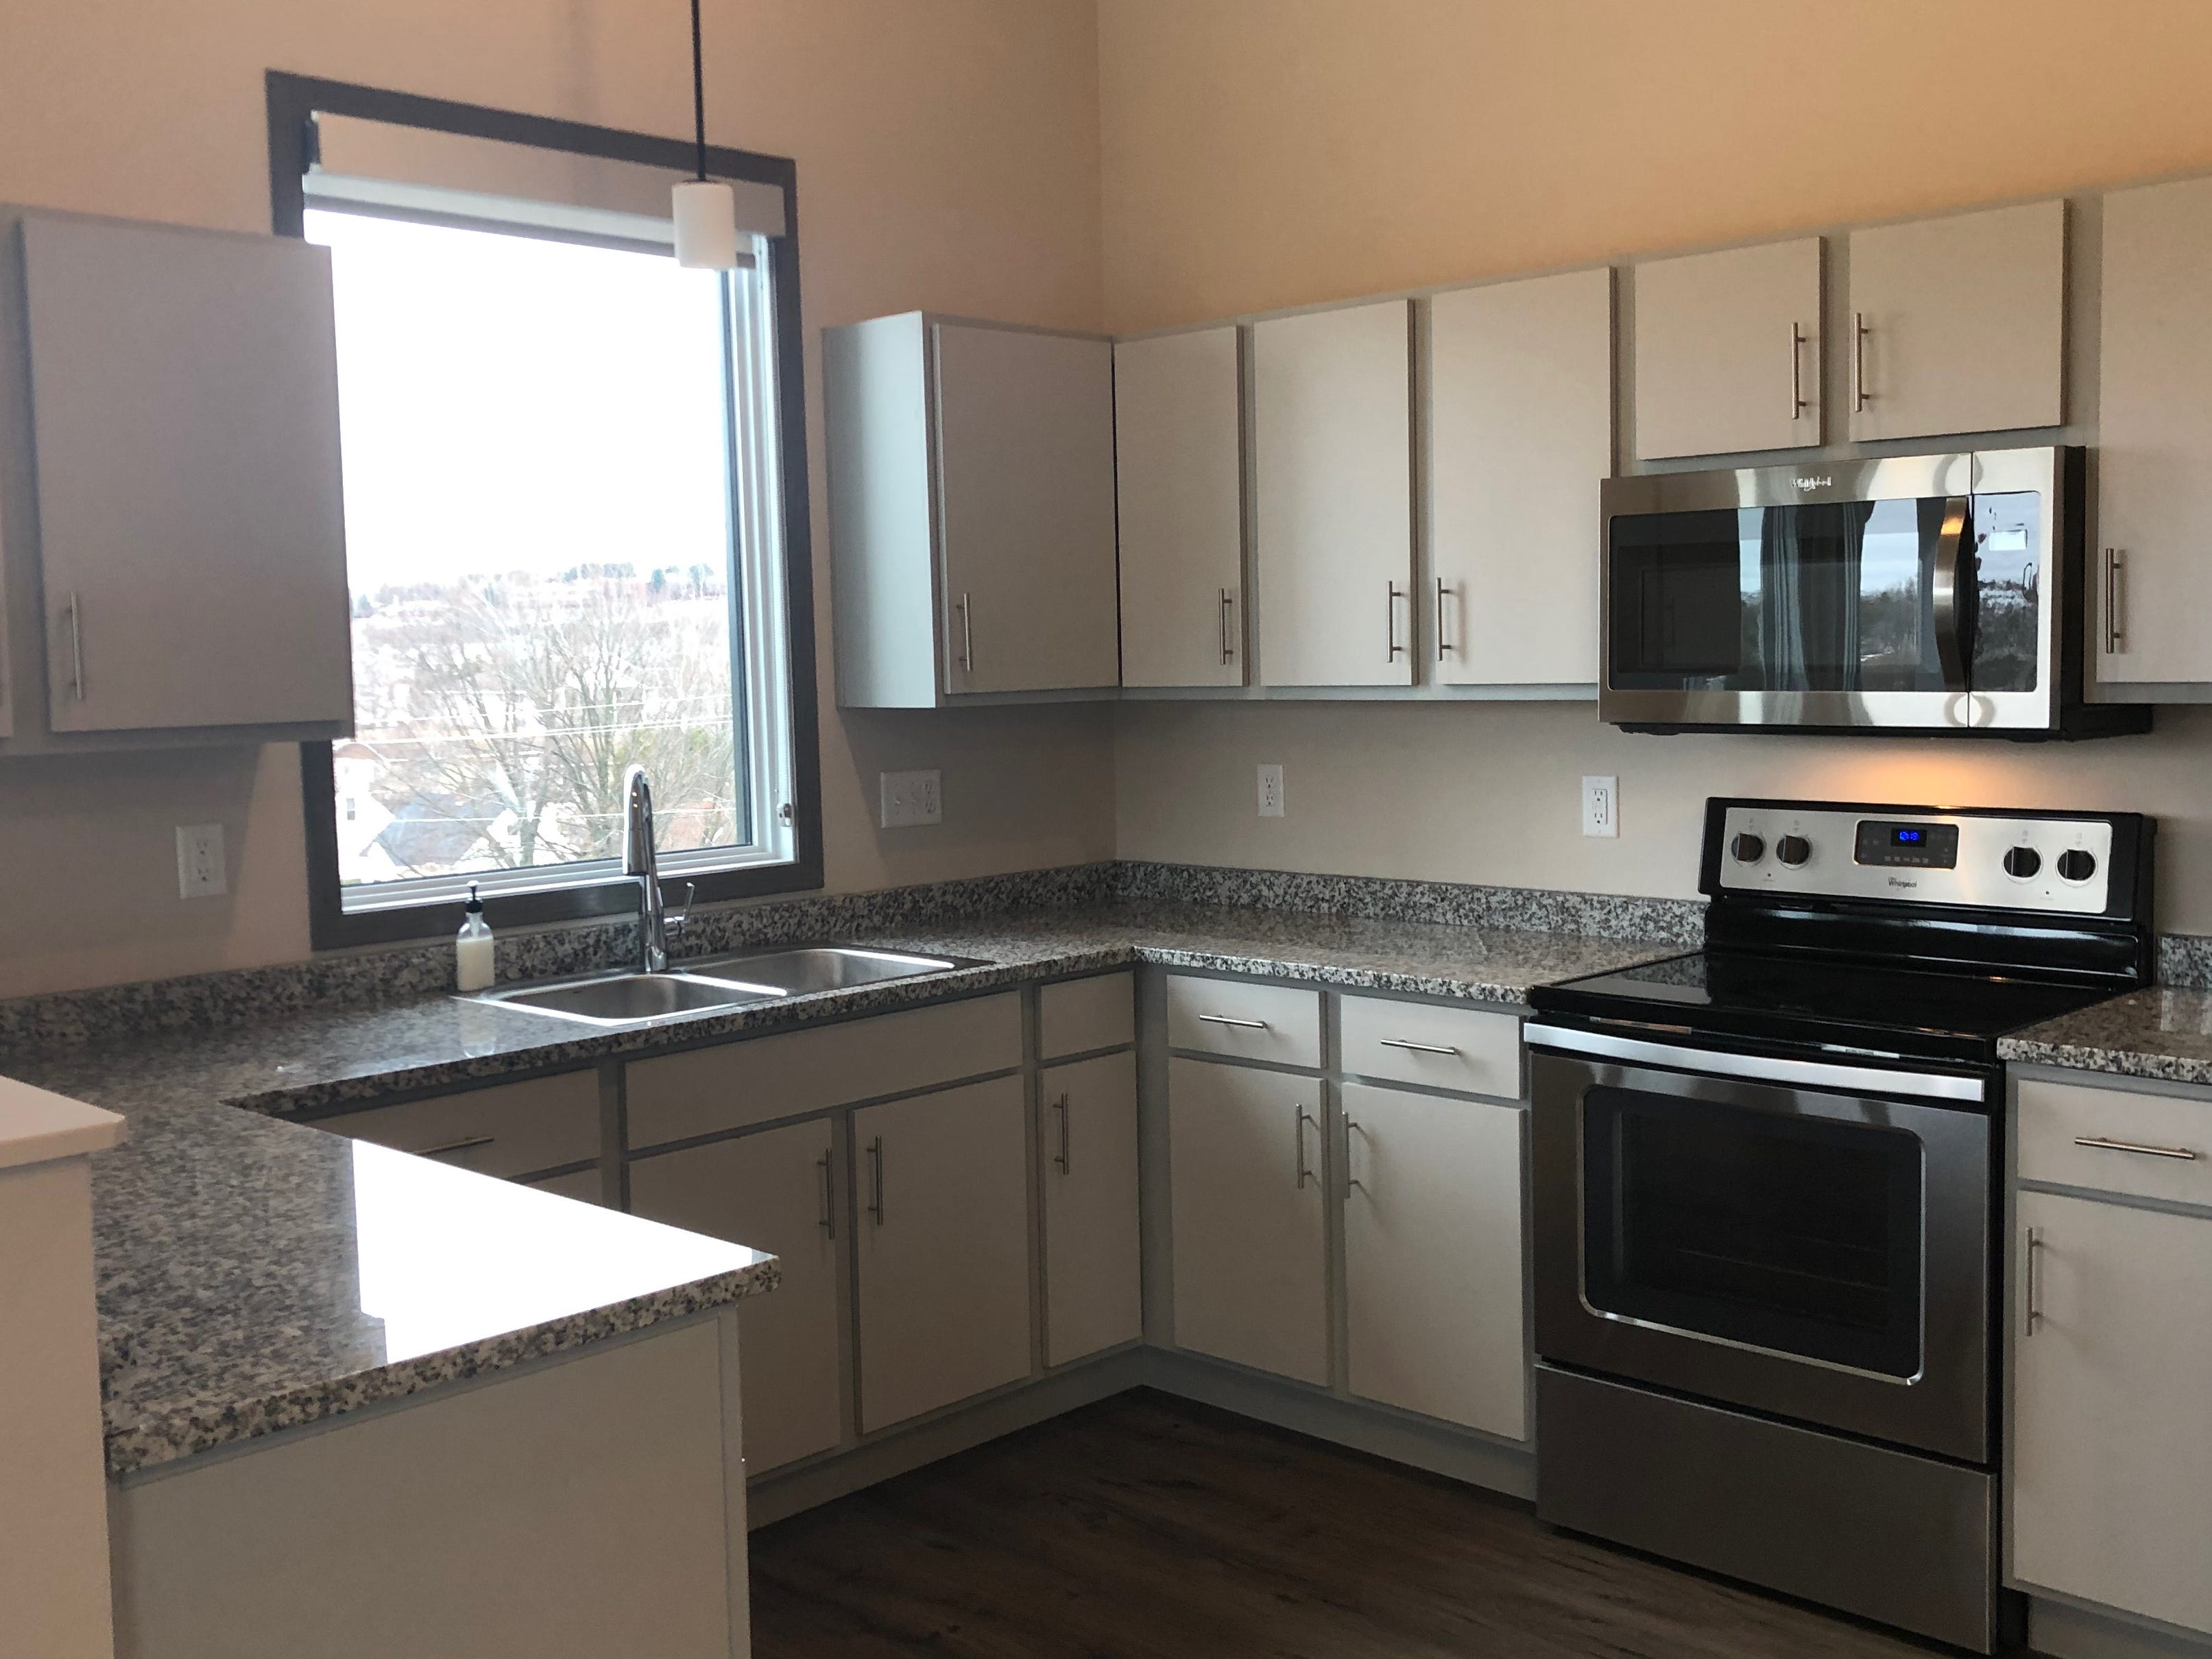 A kitchen in the Urban West apartment complex.